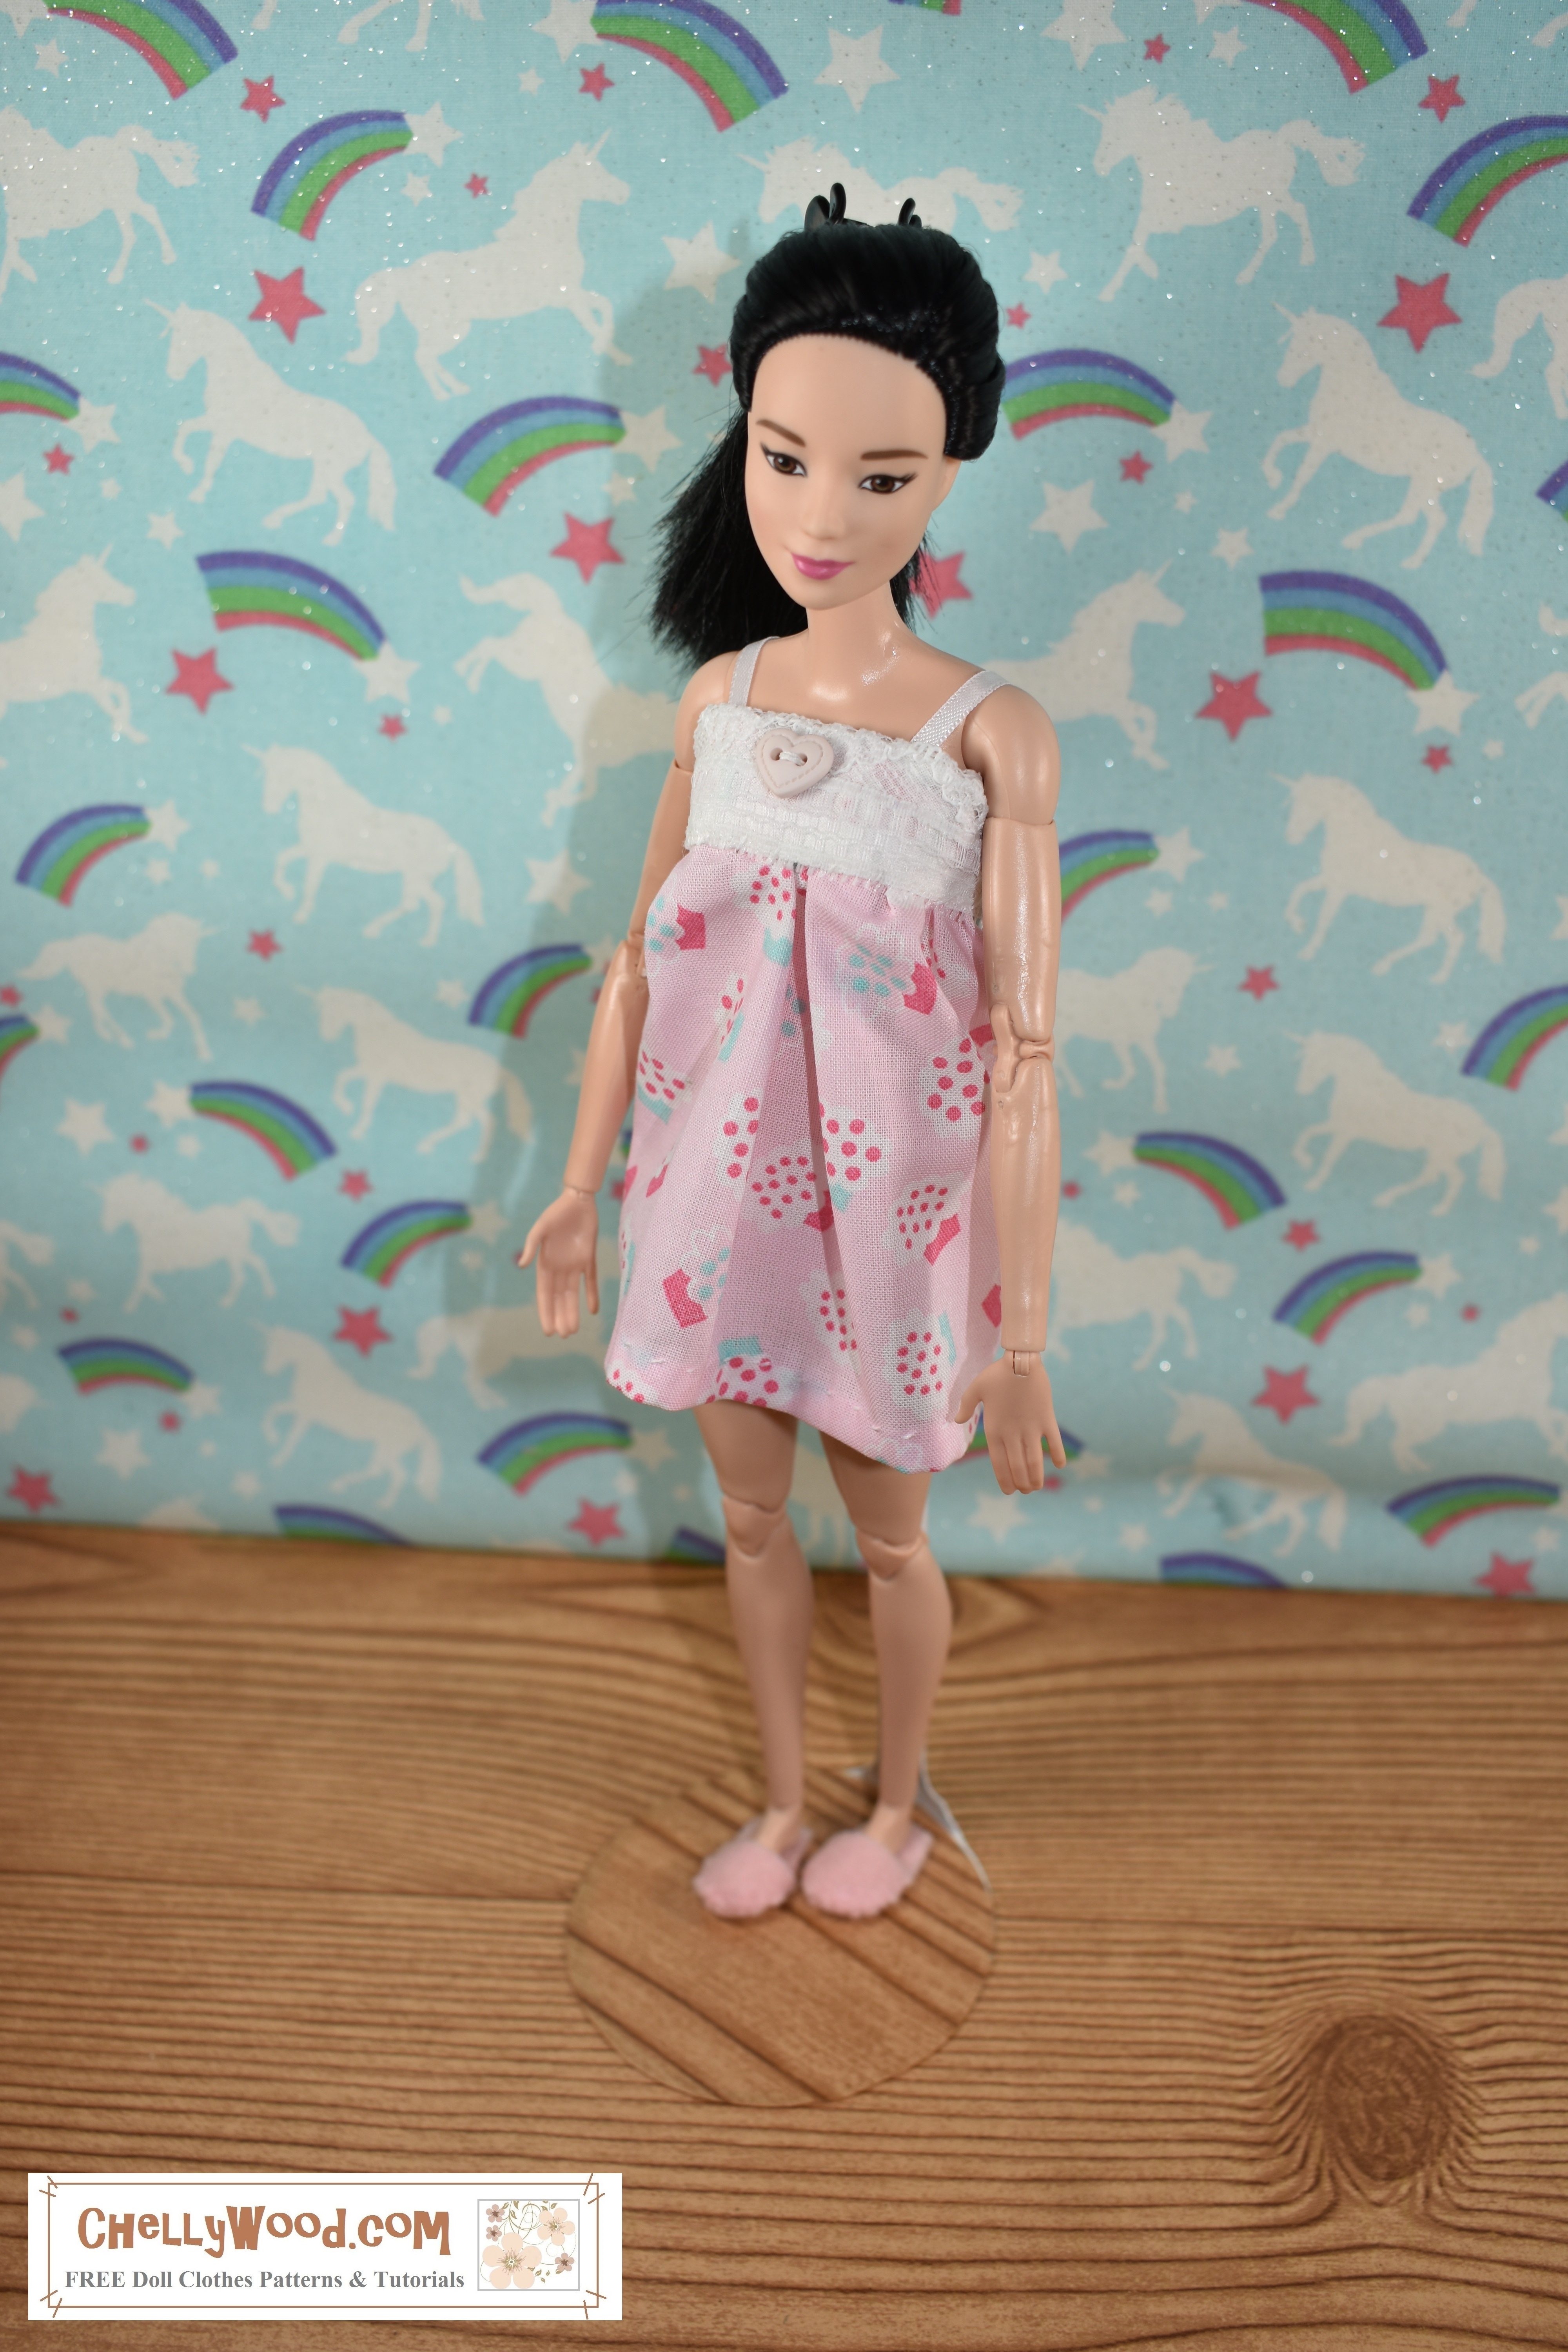 photo relating to Barbie Dress Patterns Free Printable Pdf titled Skipper Behaviors Free of charge Doll Apparel Routines